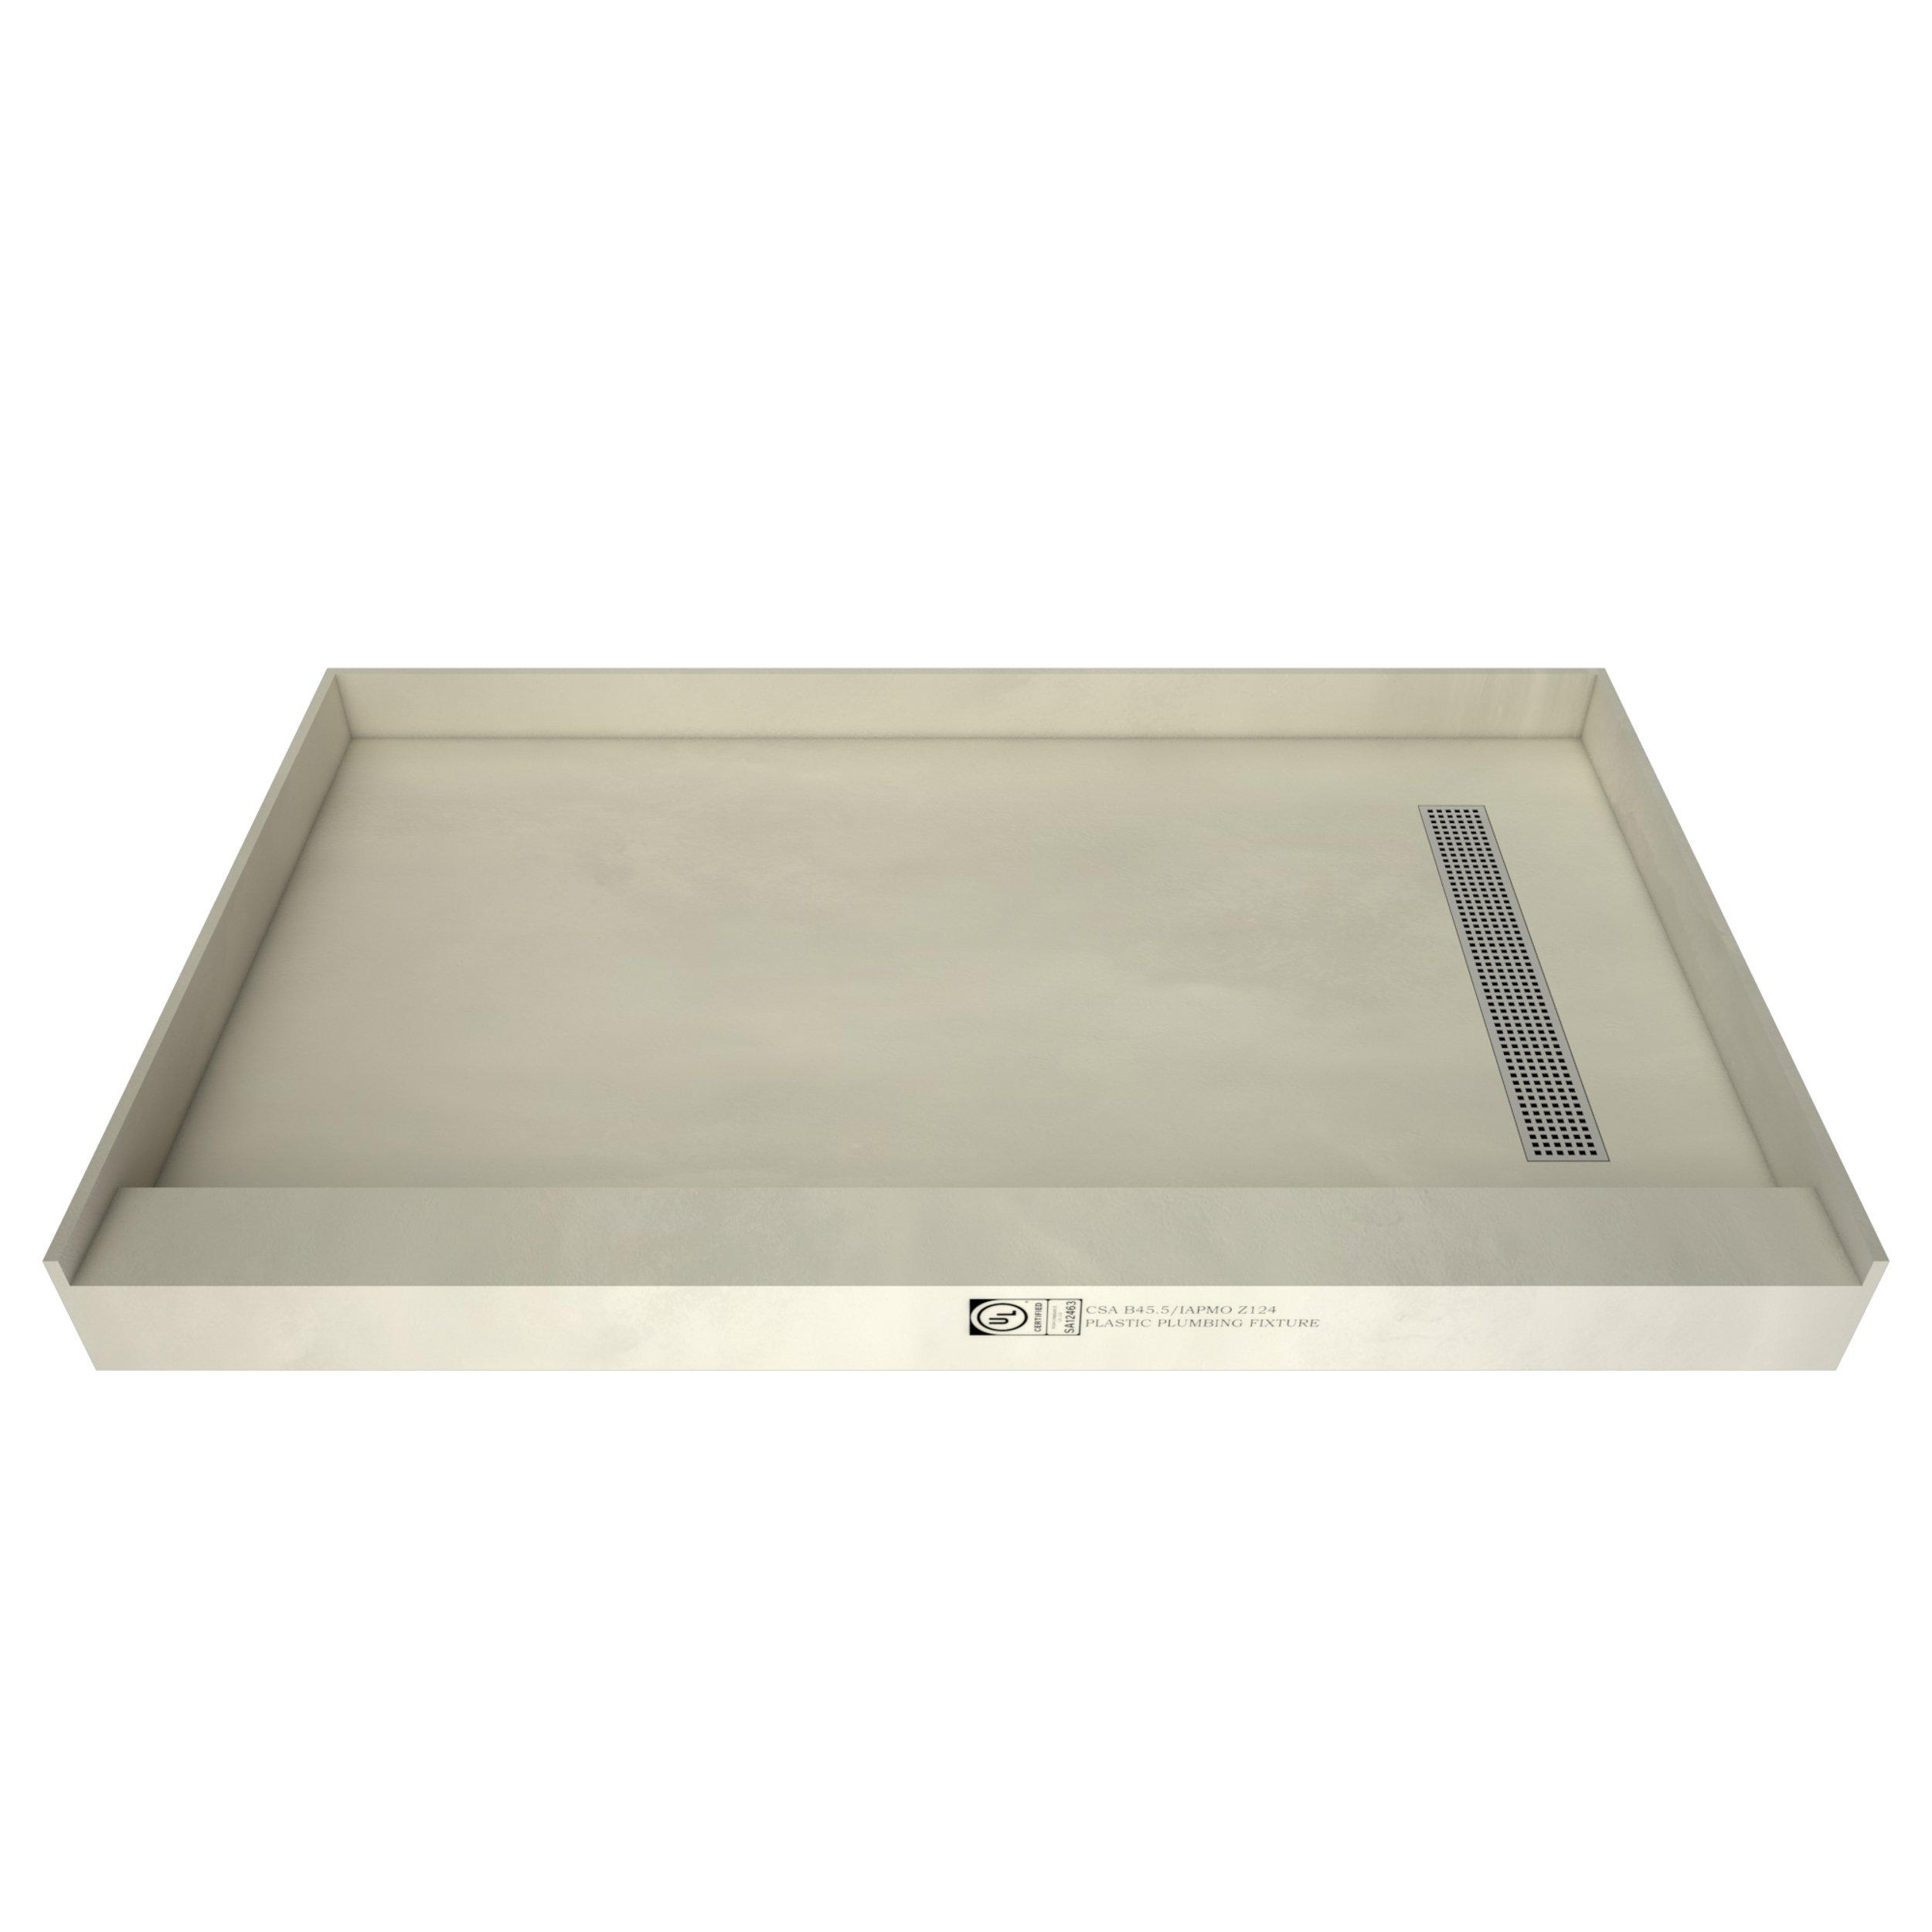 tile redi single curb shower pan with